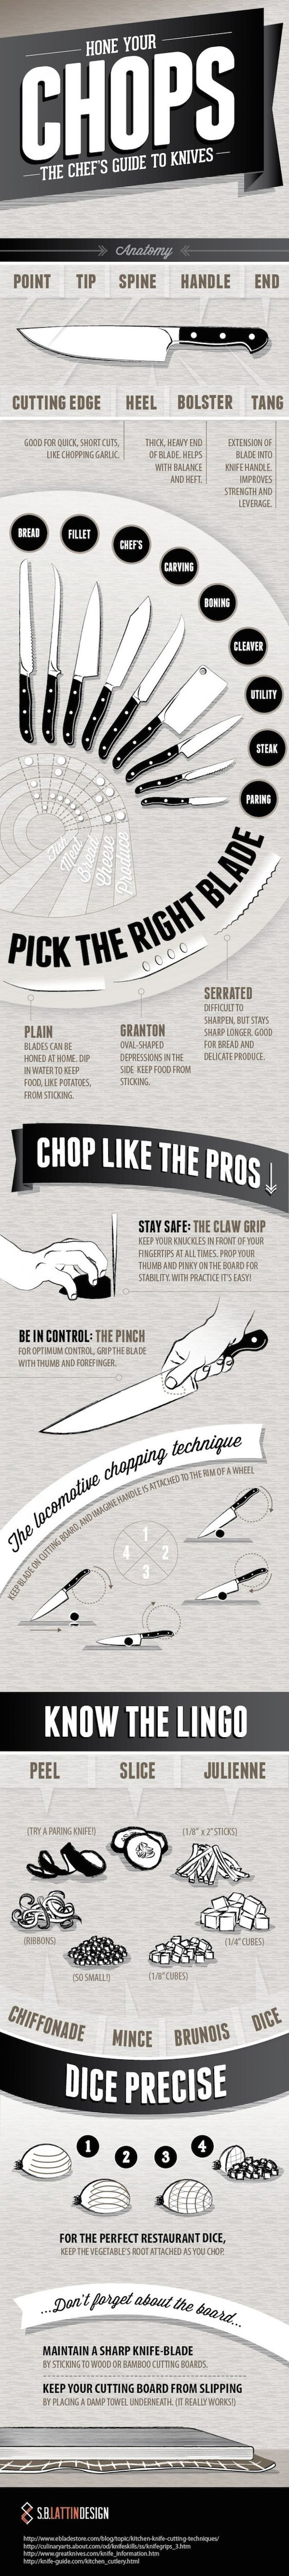 For knife skills...wish i would've had this guide when I was younger!